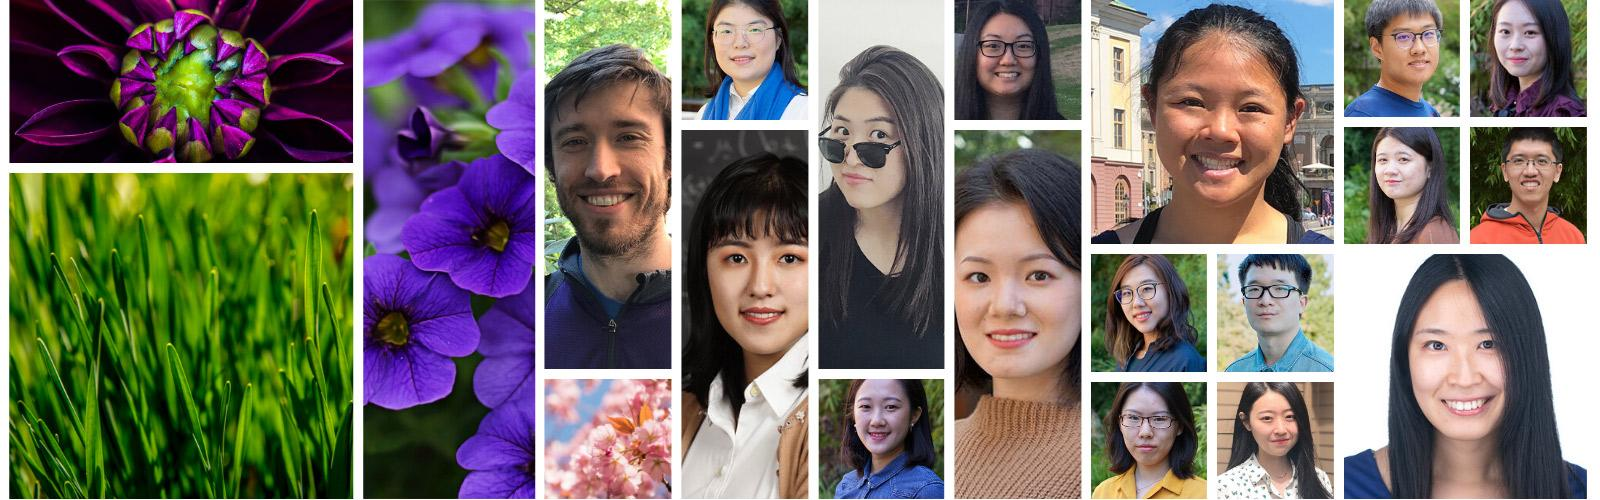 Compilation of 2020 graduates in UW Biostatistics